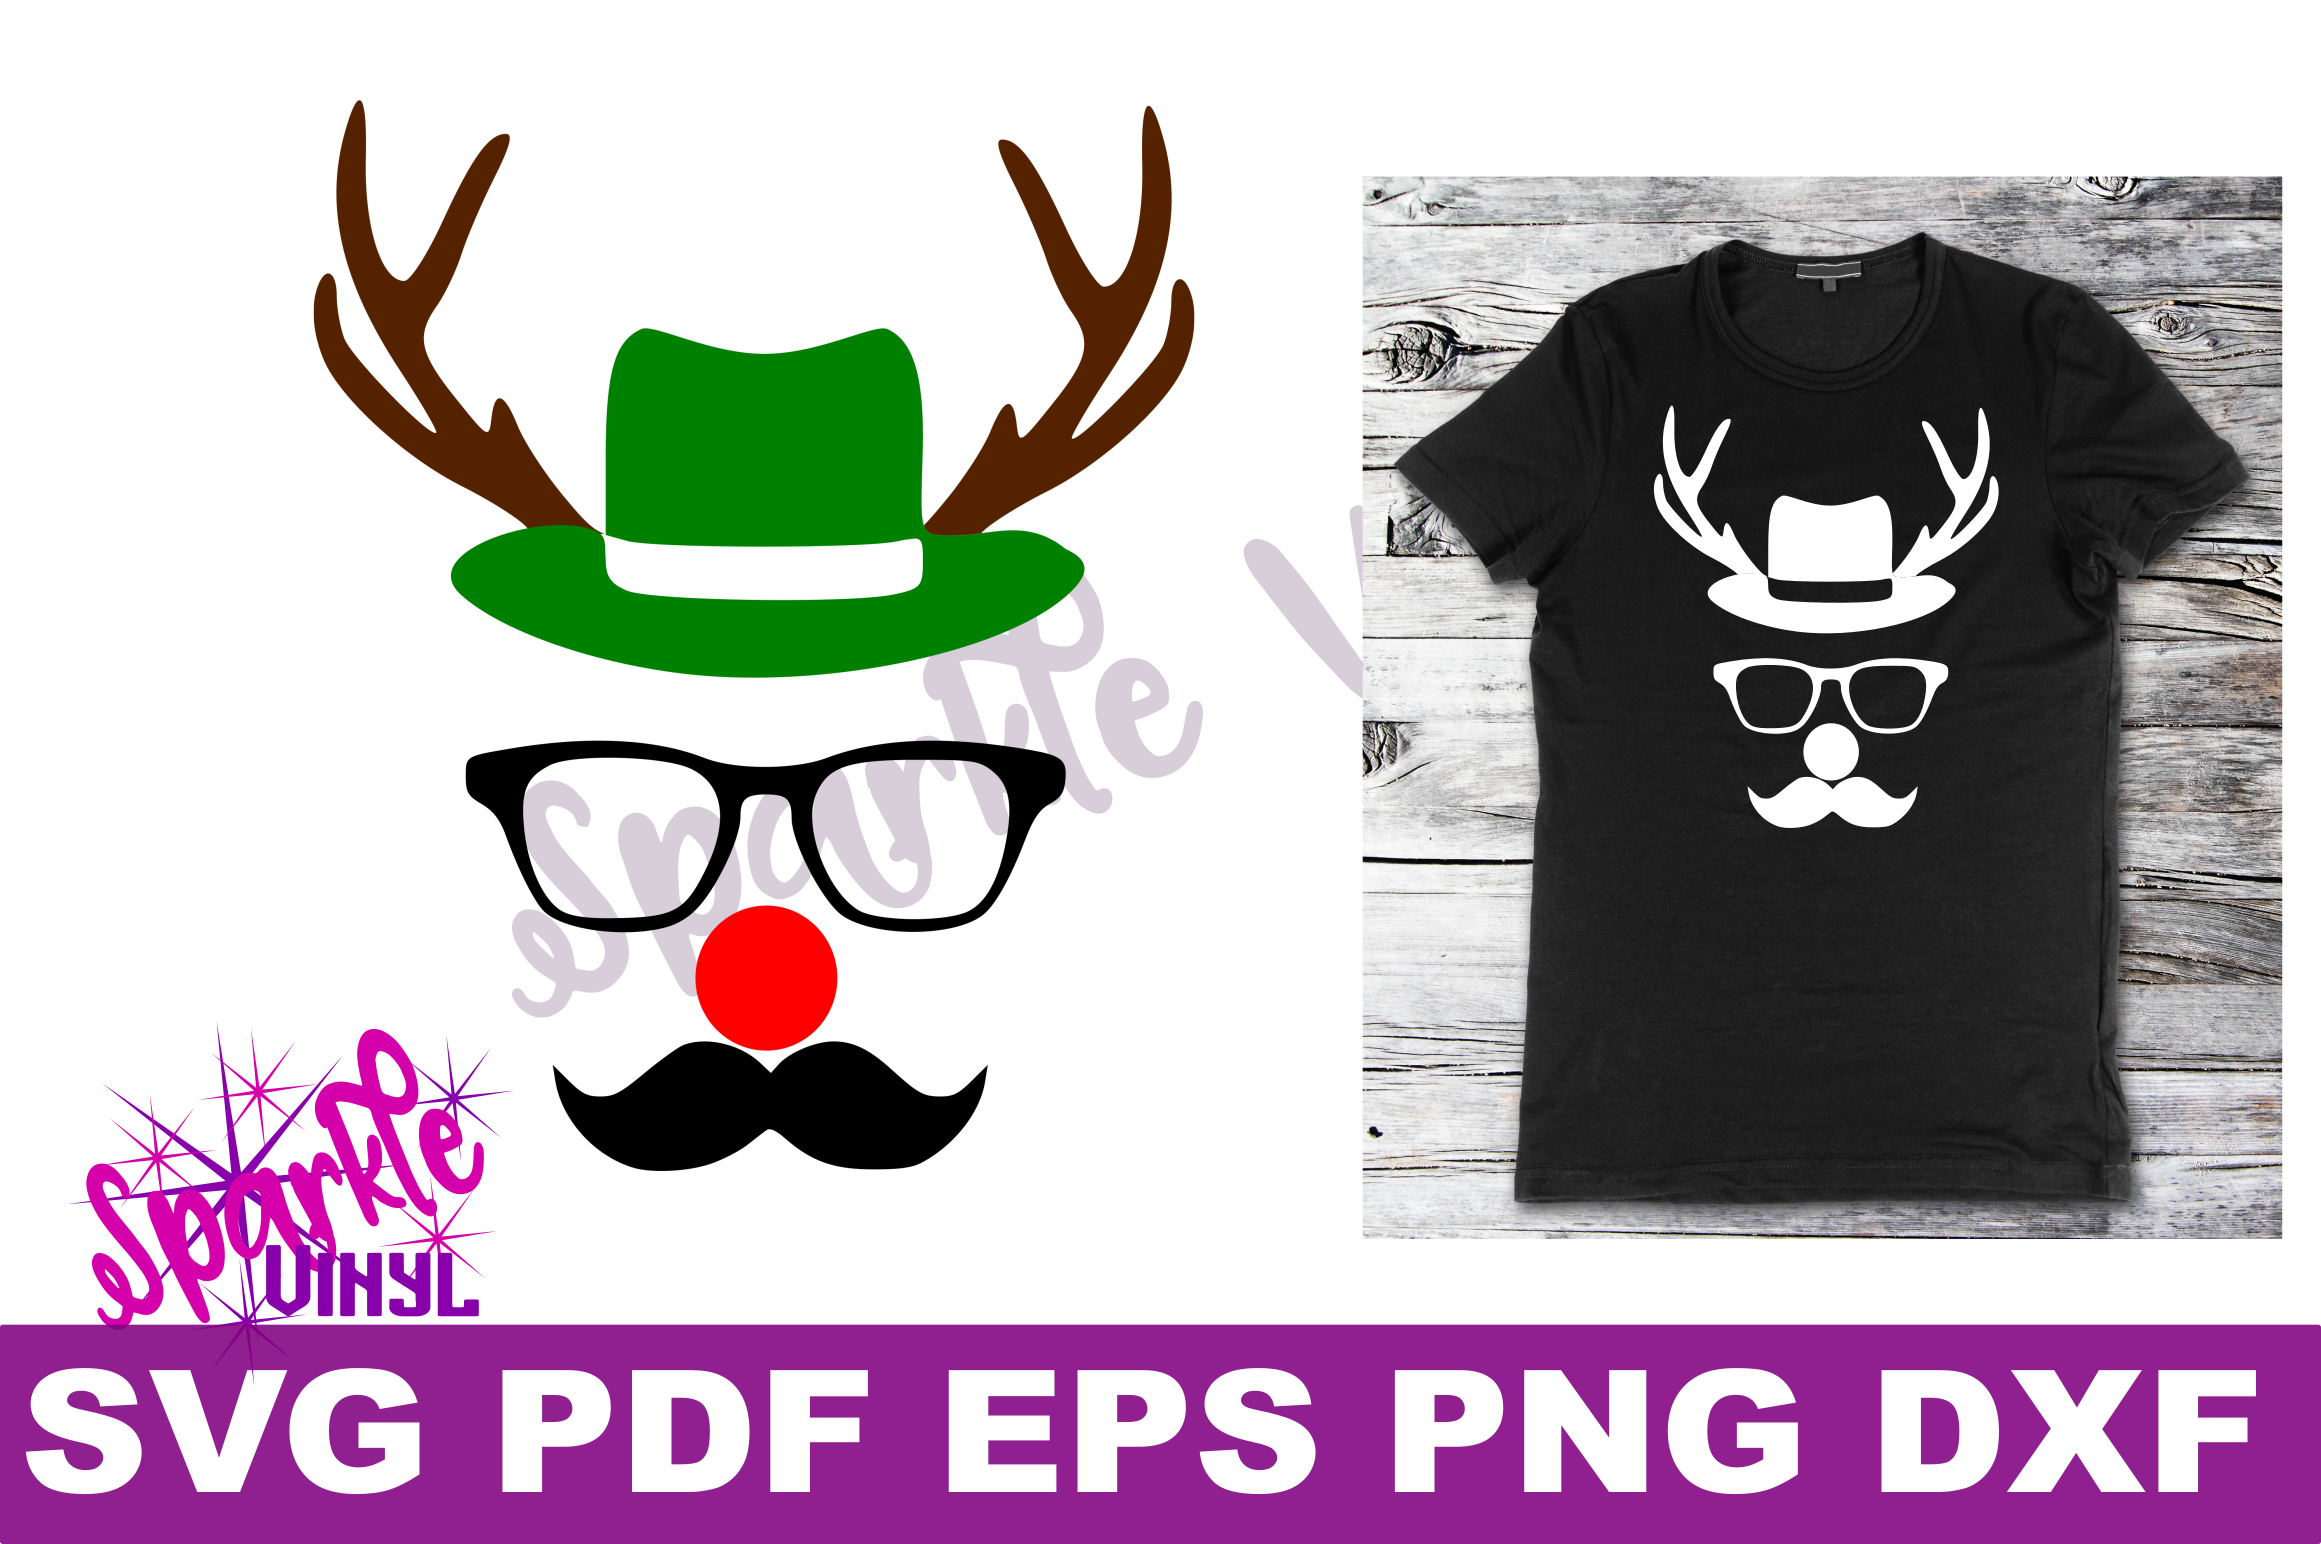 Svg Christmas Reindeer face ladies shirt tshirt outfit with hat glasses mustache red nose antlers svg files for cricut silhouette printable example image 3